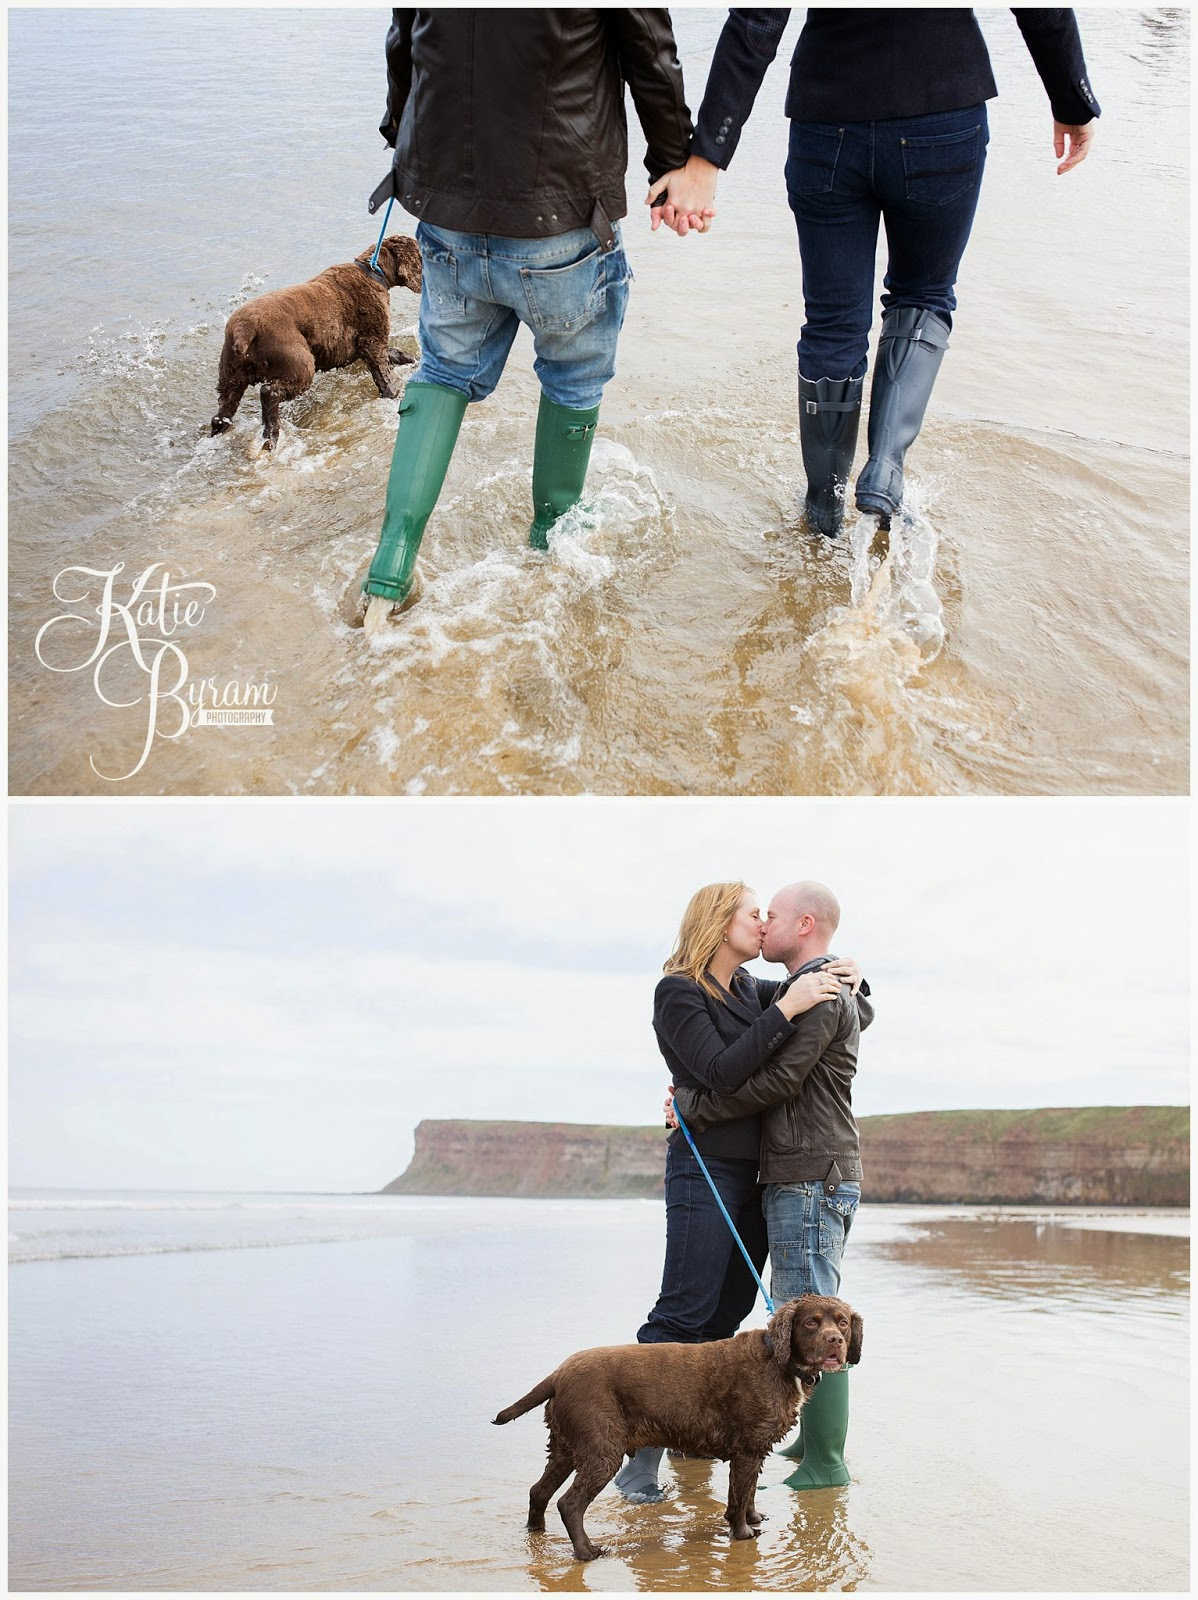 saltburn wedding, saltburn beach, saltburn engagement shoot, pre-wedding shoot with dog, couple on beach, katie byram photography, north yorkshire wedding, saltburn spa hotel, raithwaite hall